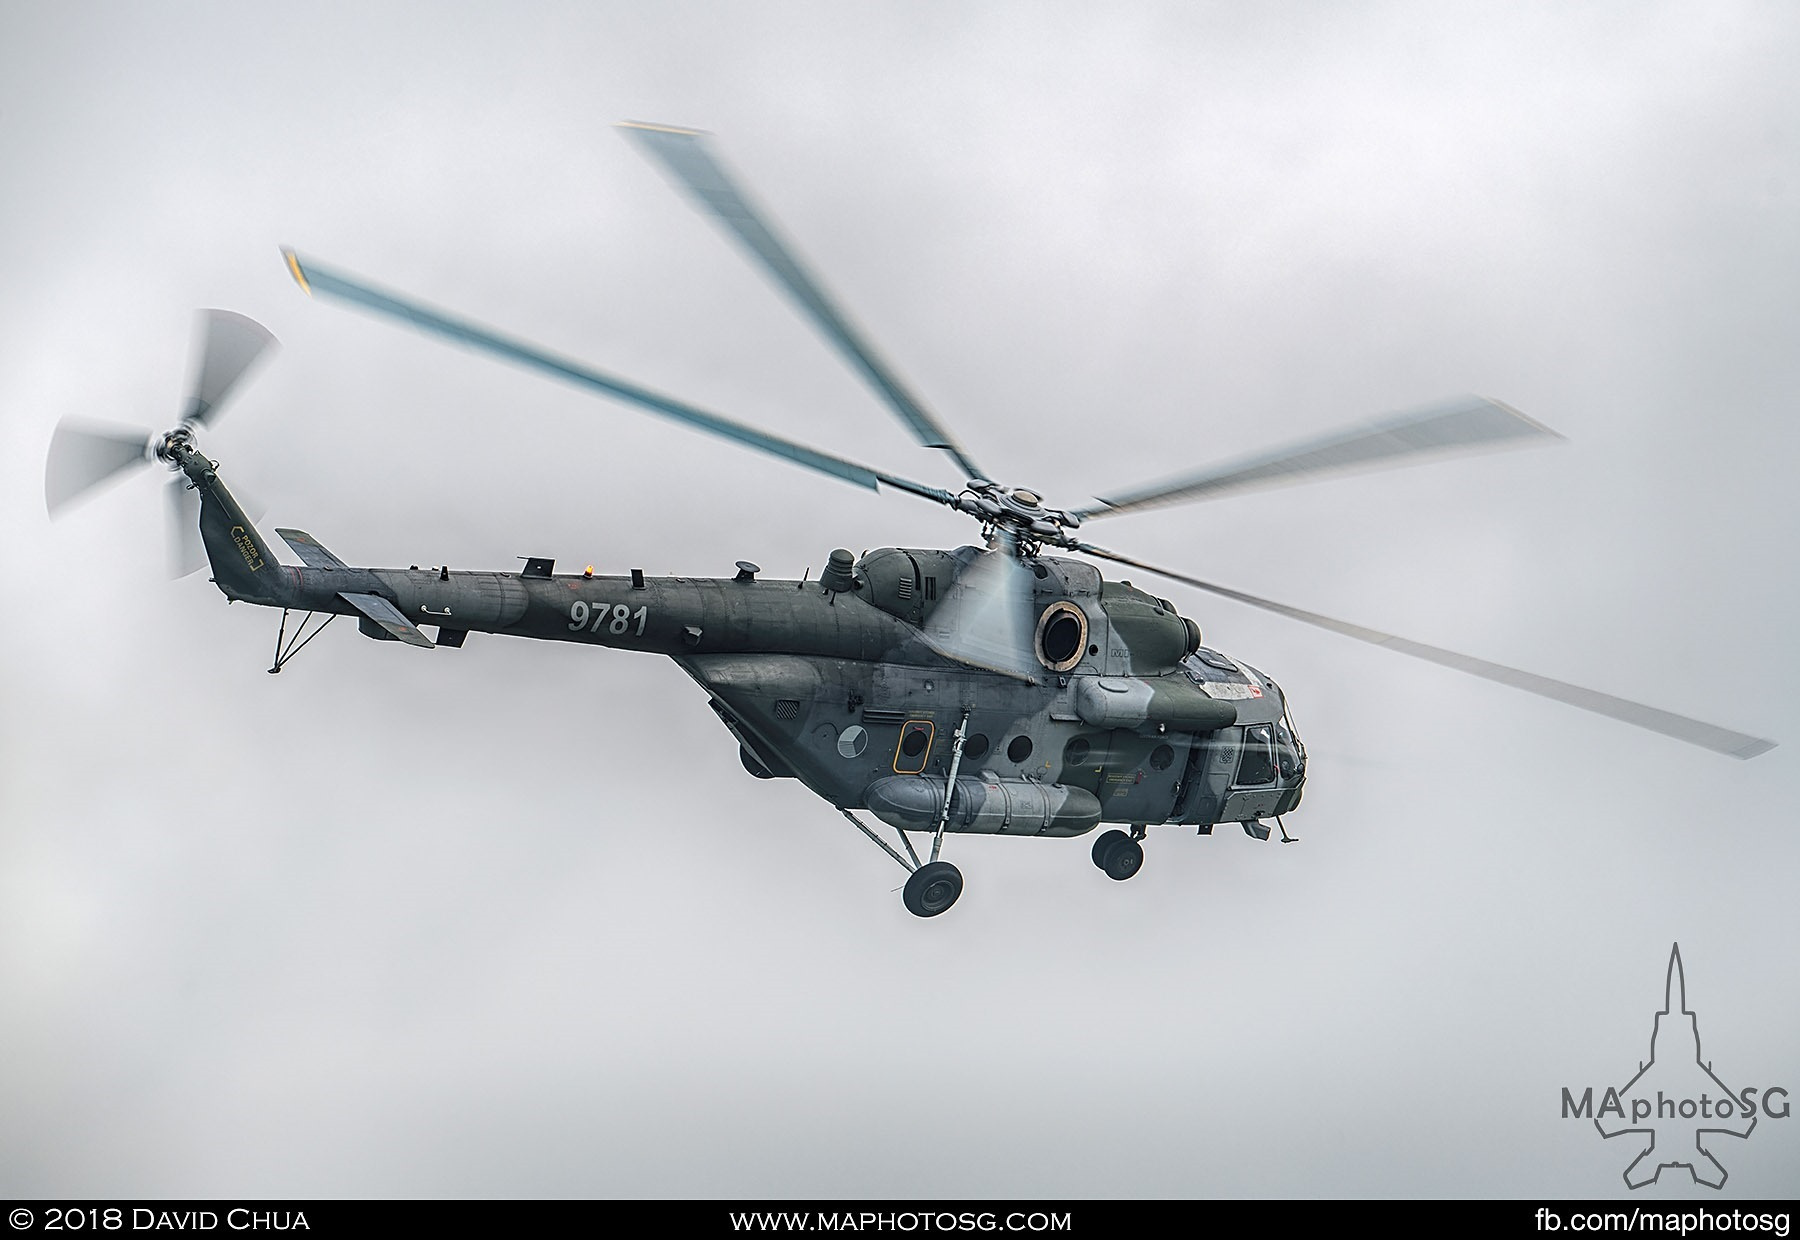 21. Czech Air Force Mil Mi-171